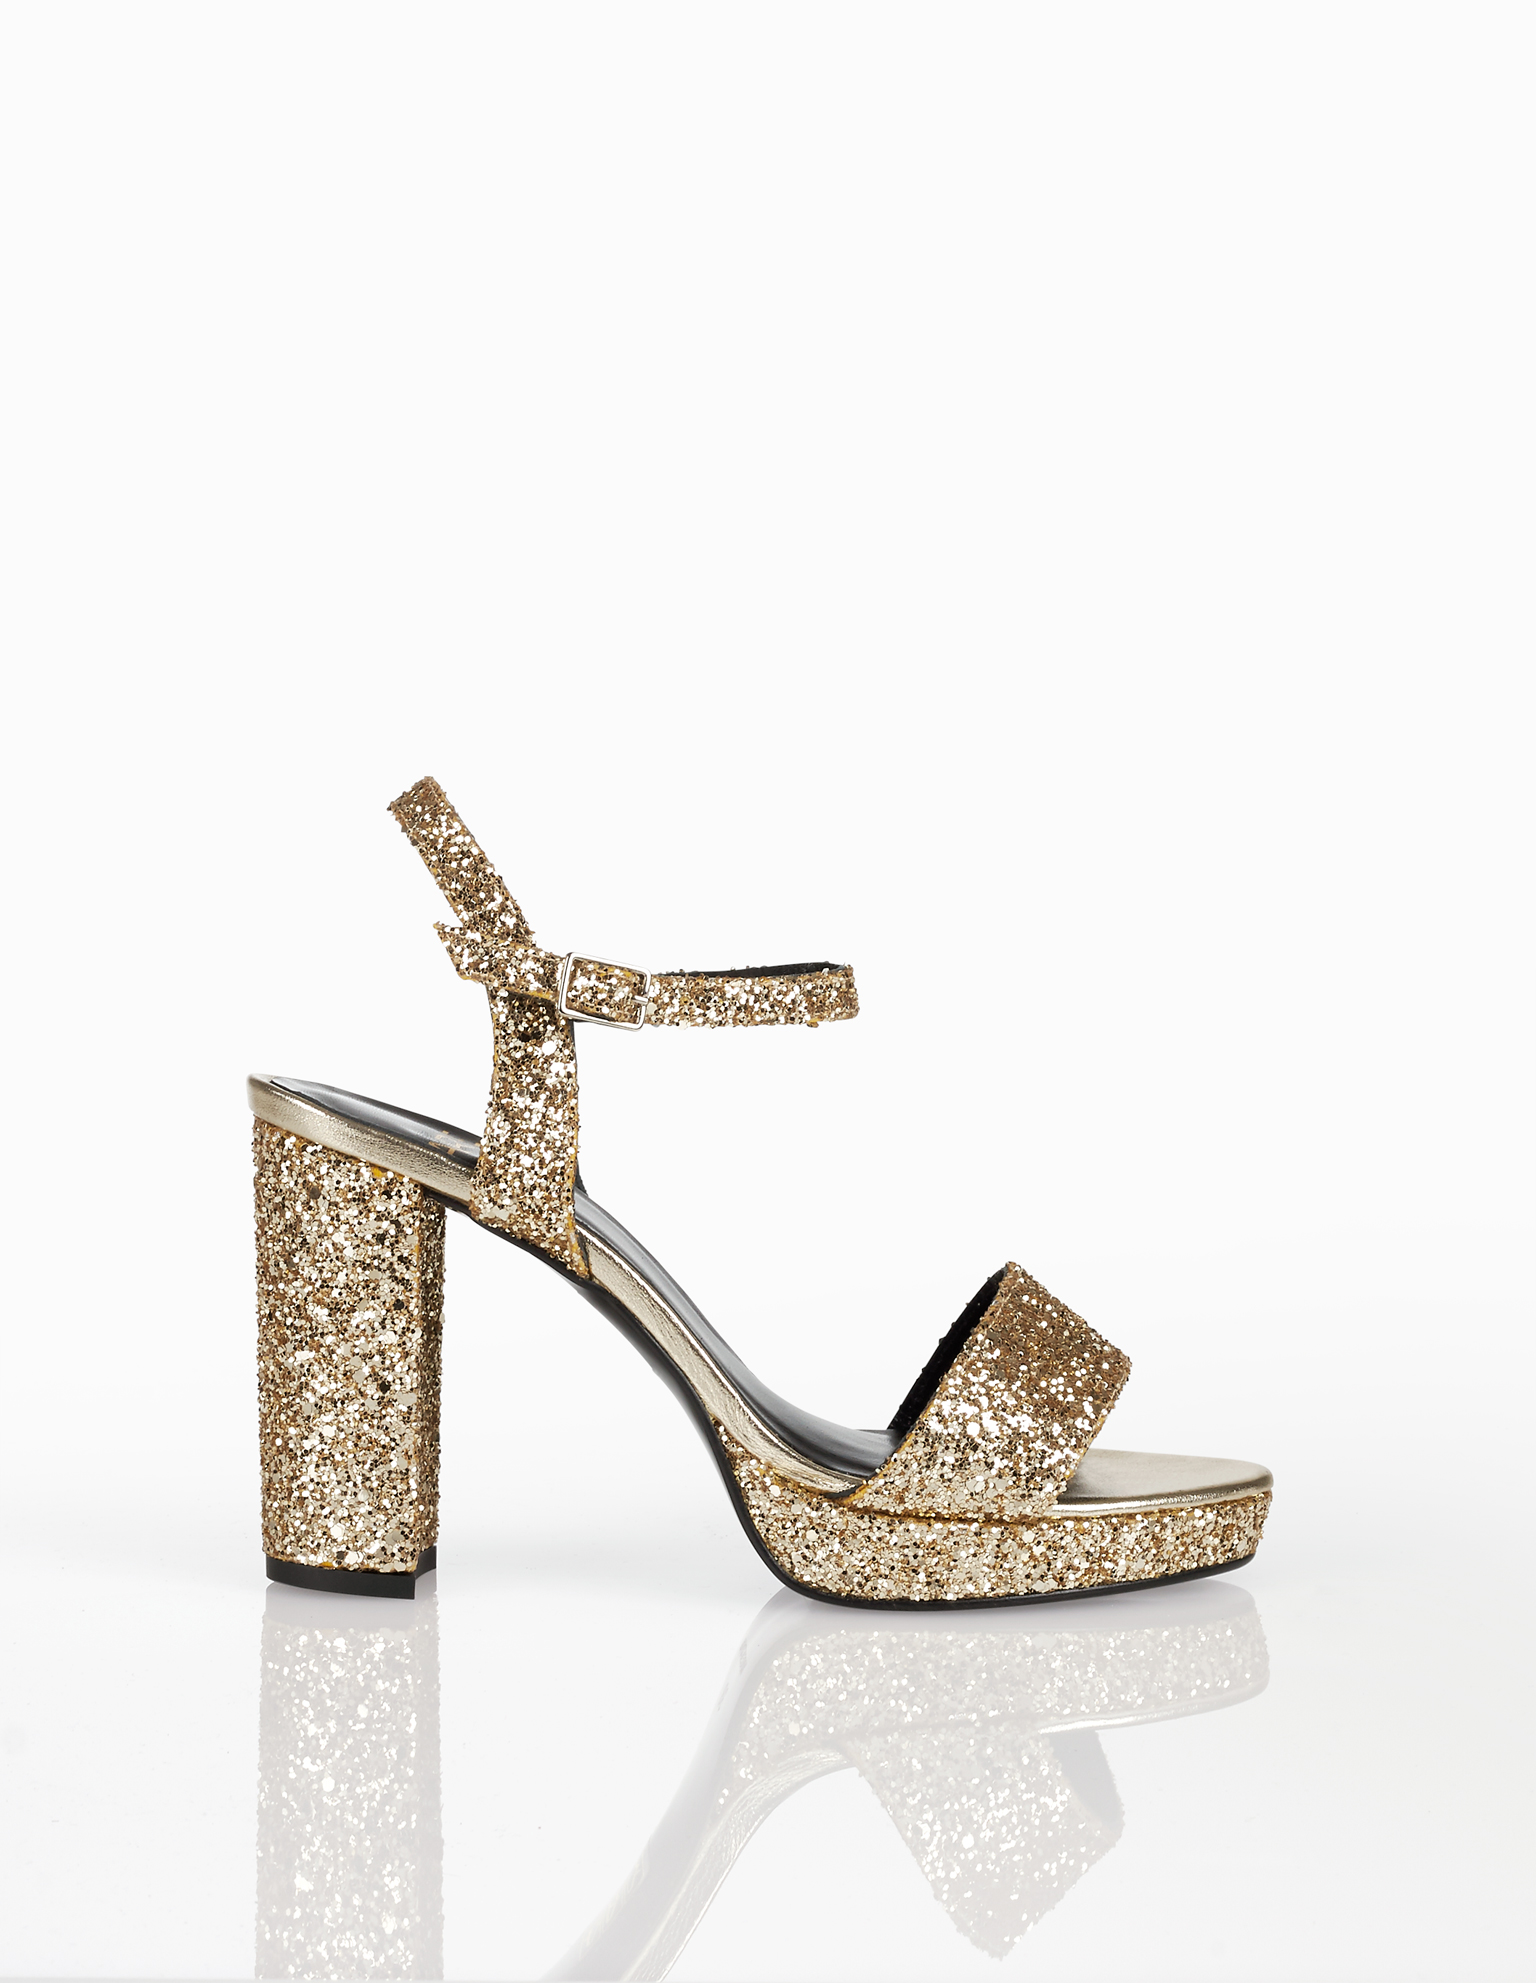 Glitter cocktail platform sandals with high heel, available in black, lead, navy blue, silver and champagne. 2018 FIESTA AIRE BARCELONA Collection.